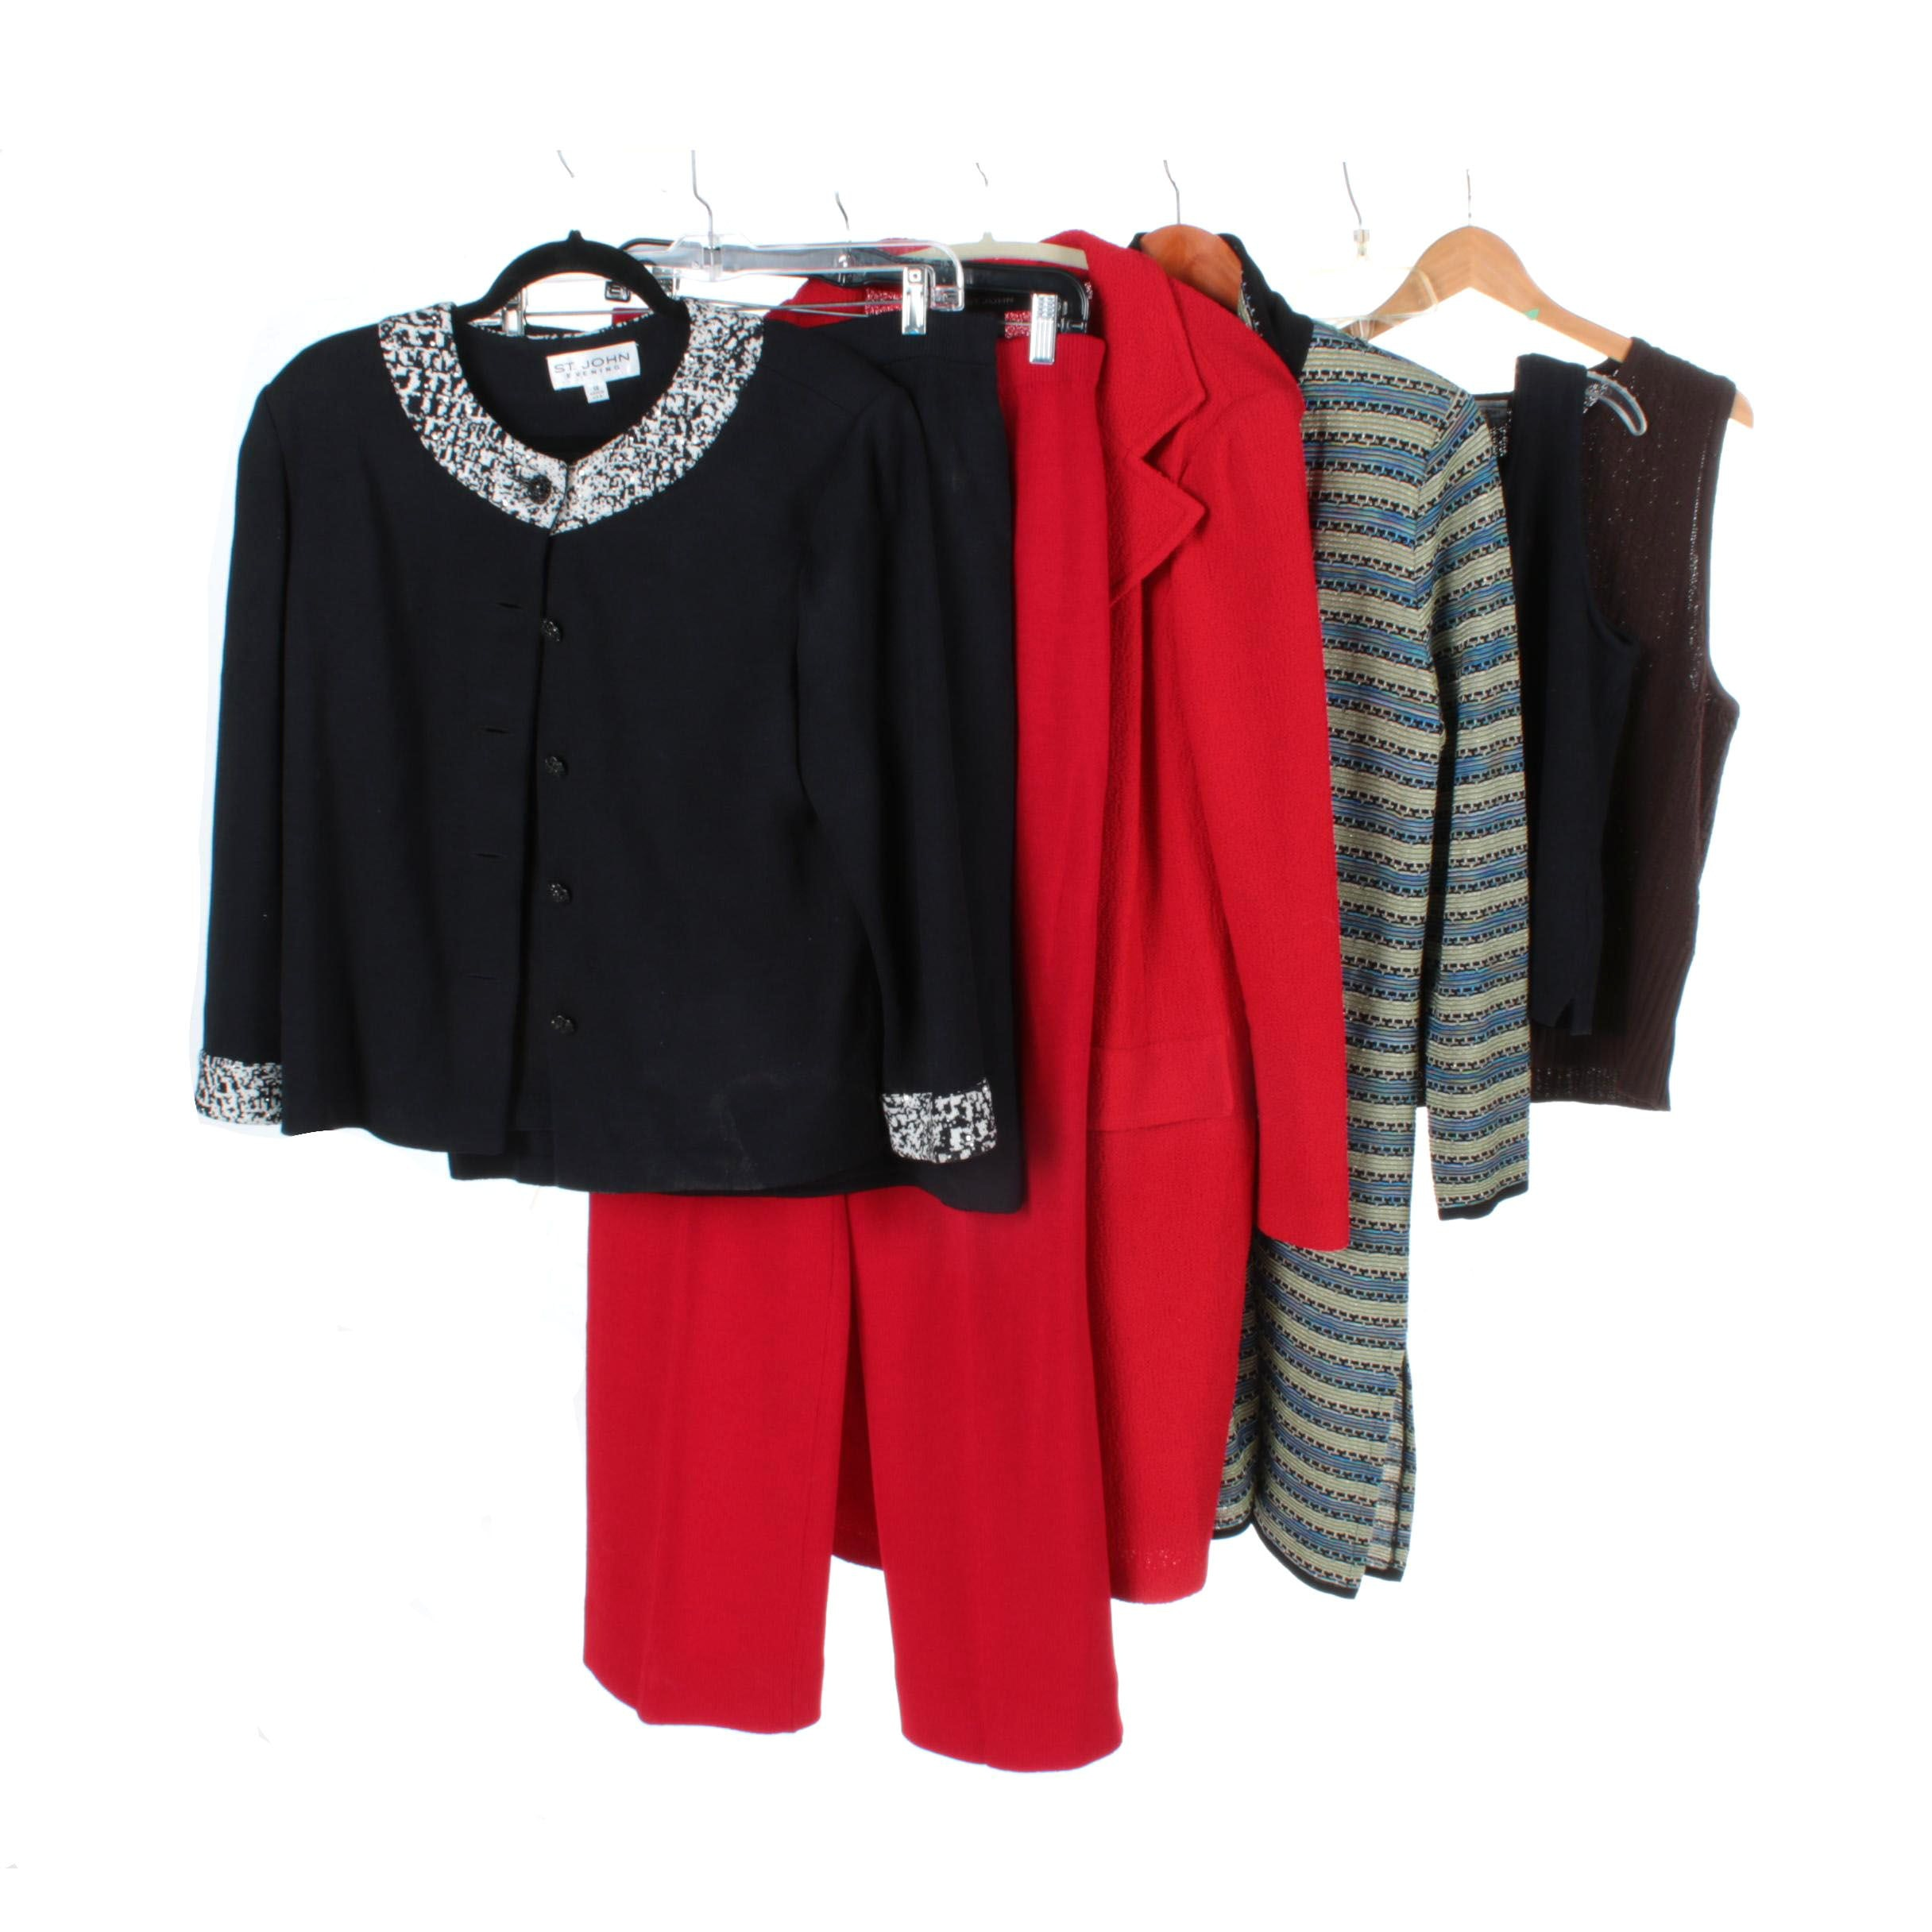 Assorted Women's Separates Including St. John